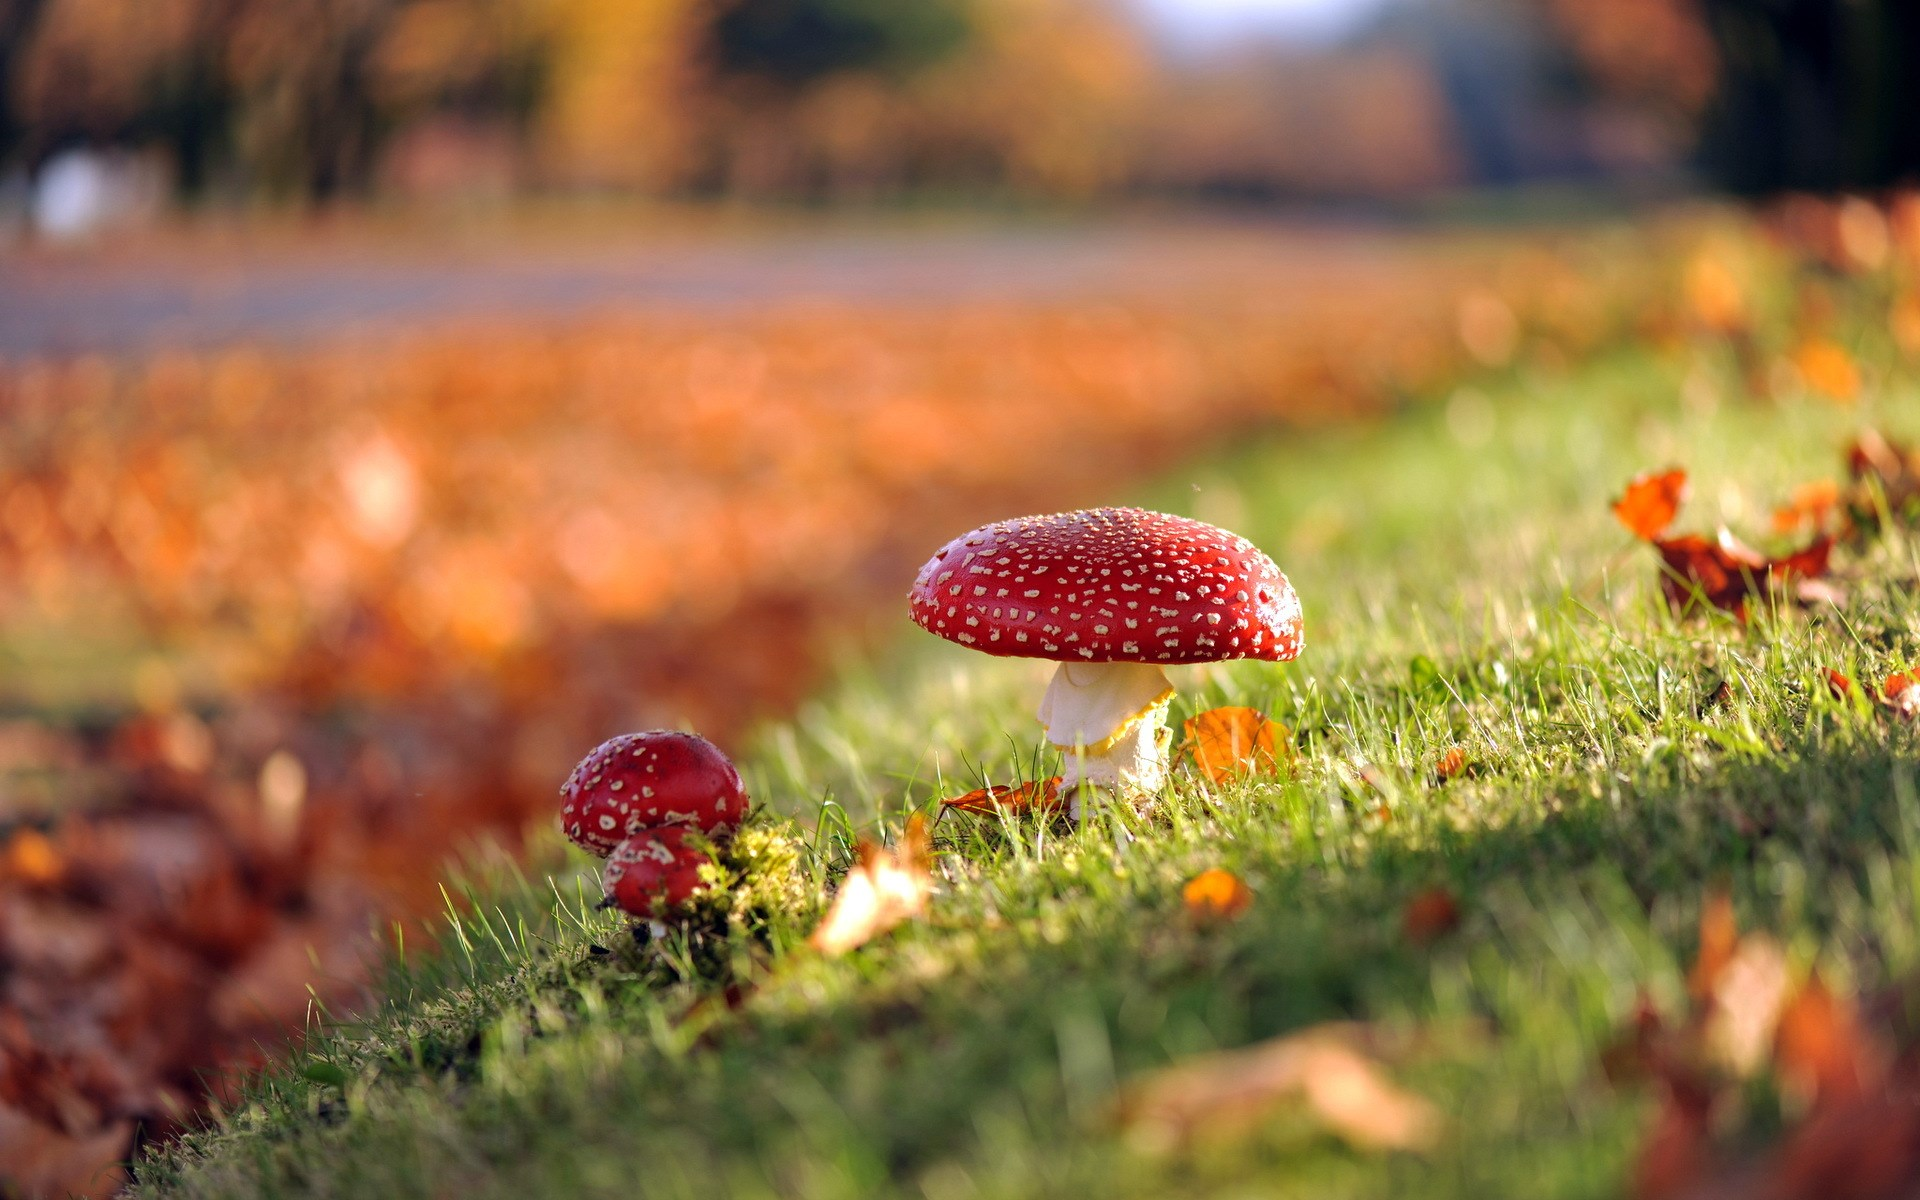 mushroom wallpaper cute red